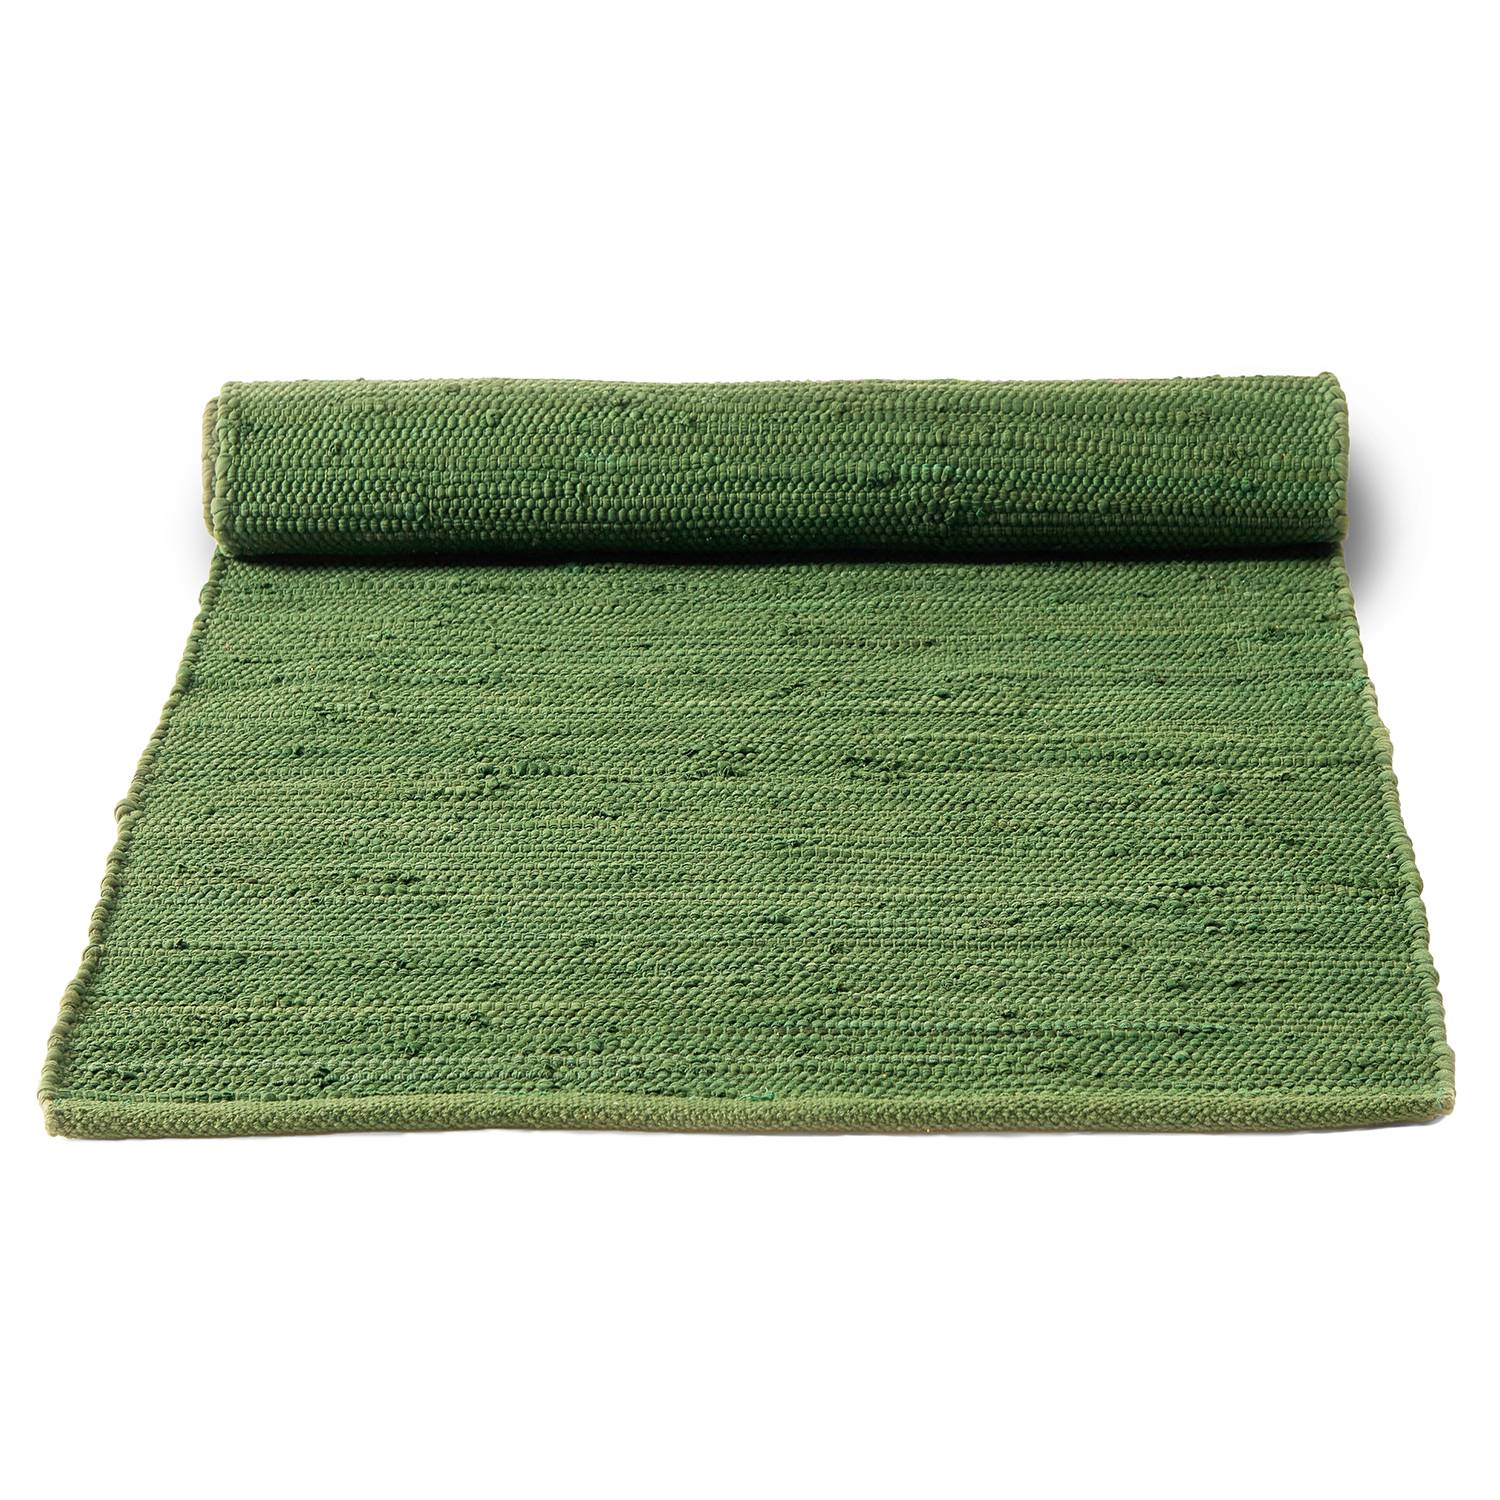 Rug Solid Cotton Matto 70x200cm, Olive Green